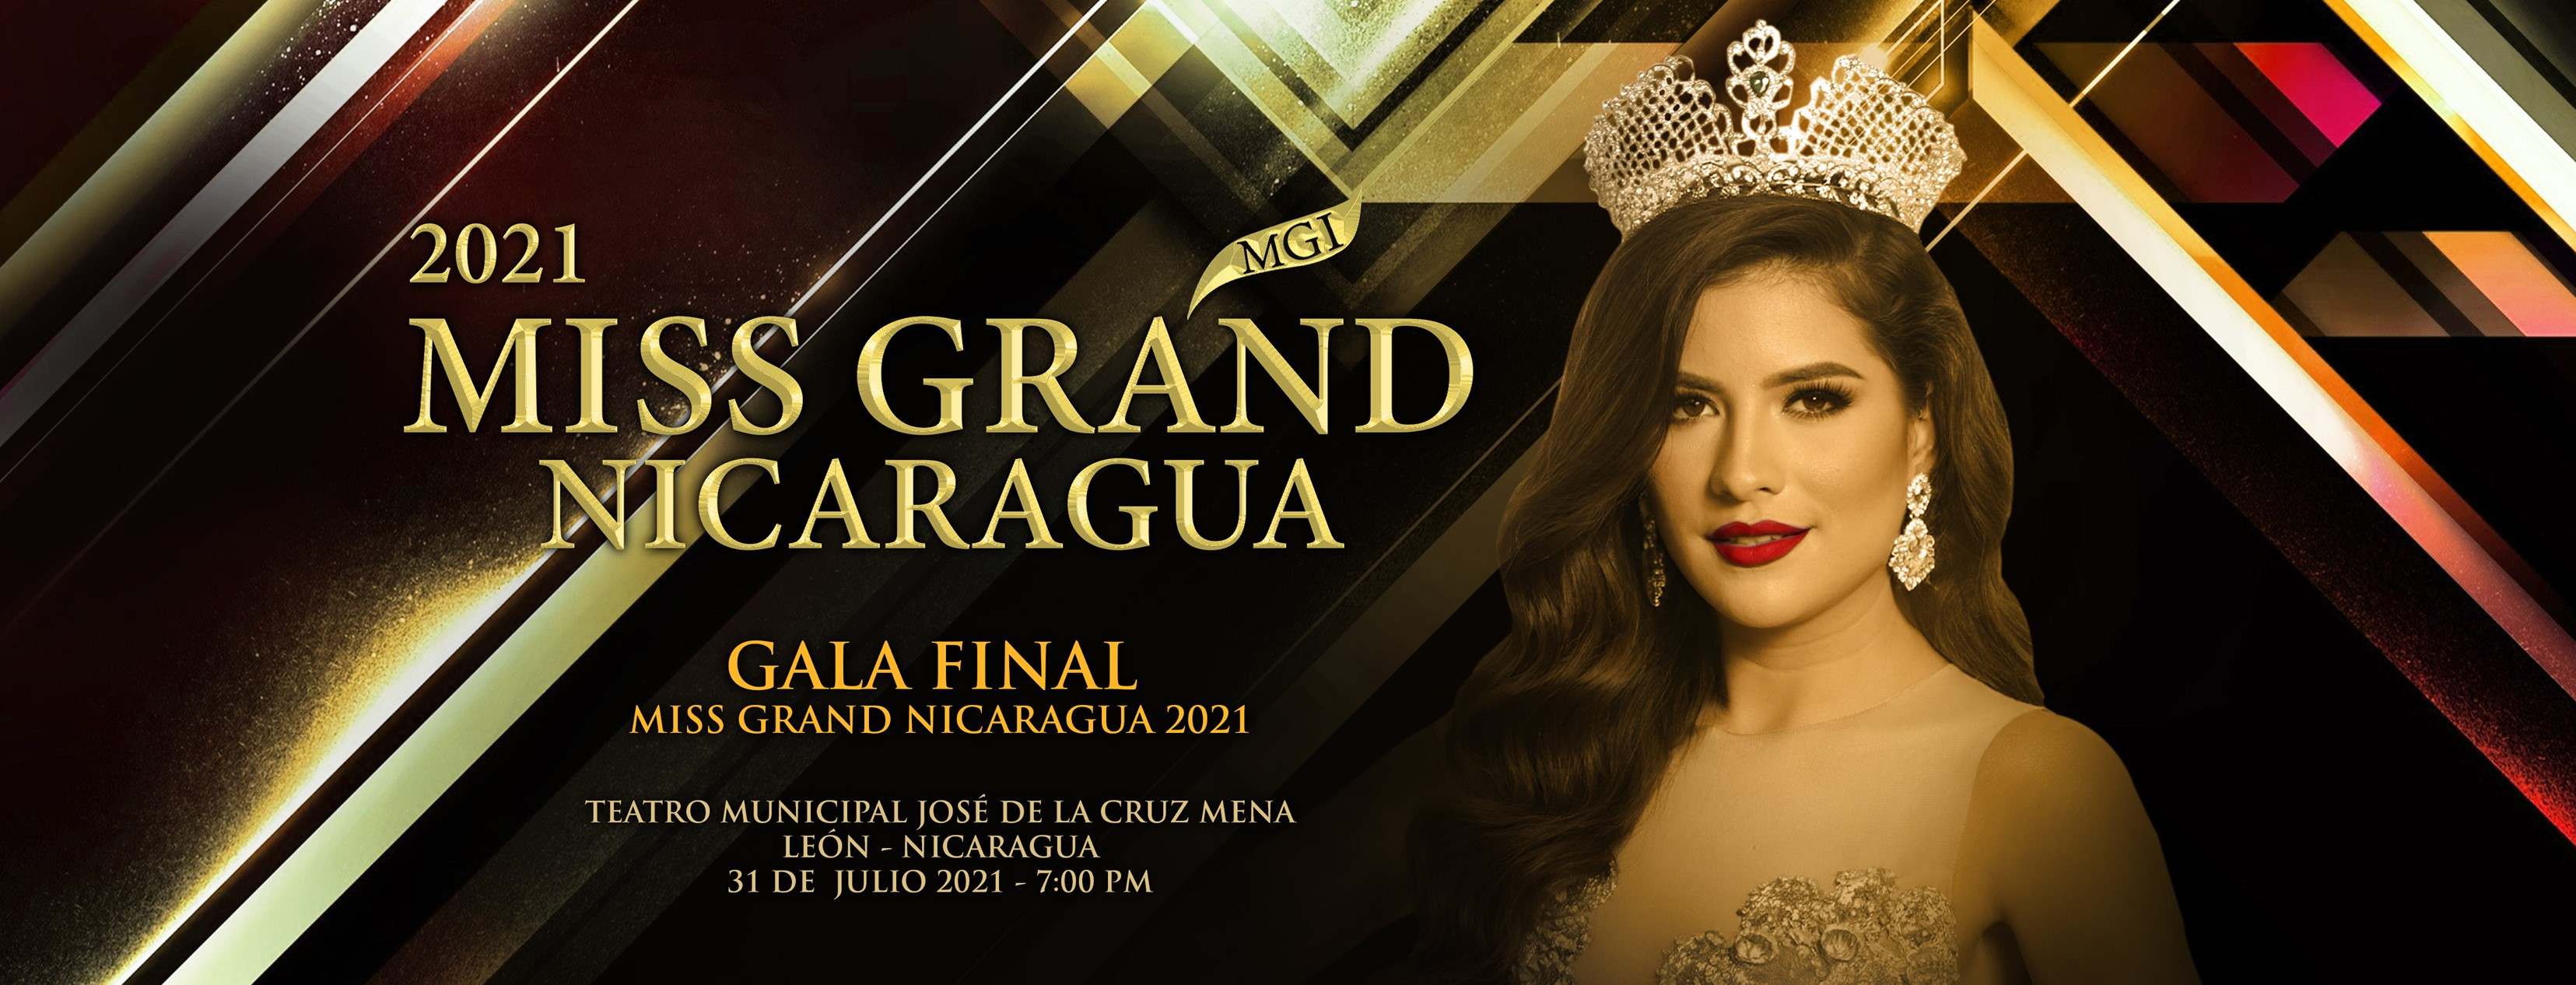 candidatas a miss grand nicaragua 2021. final: 31 july. O5IDSS